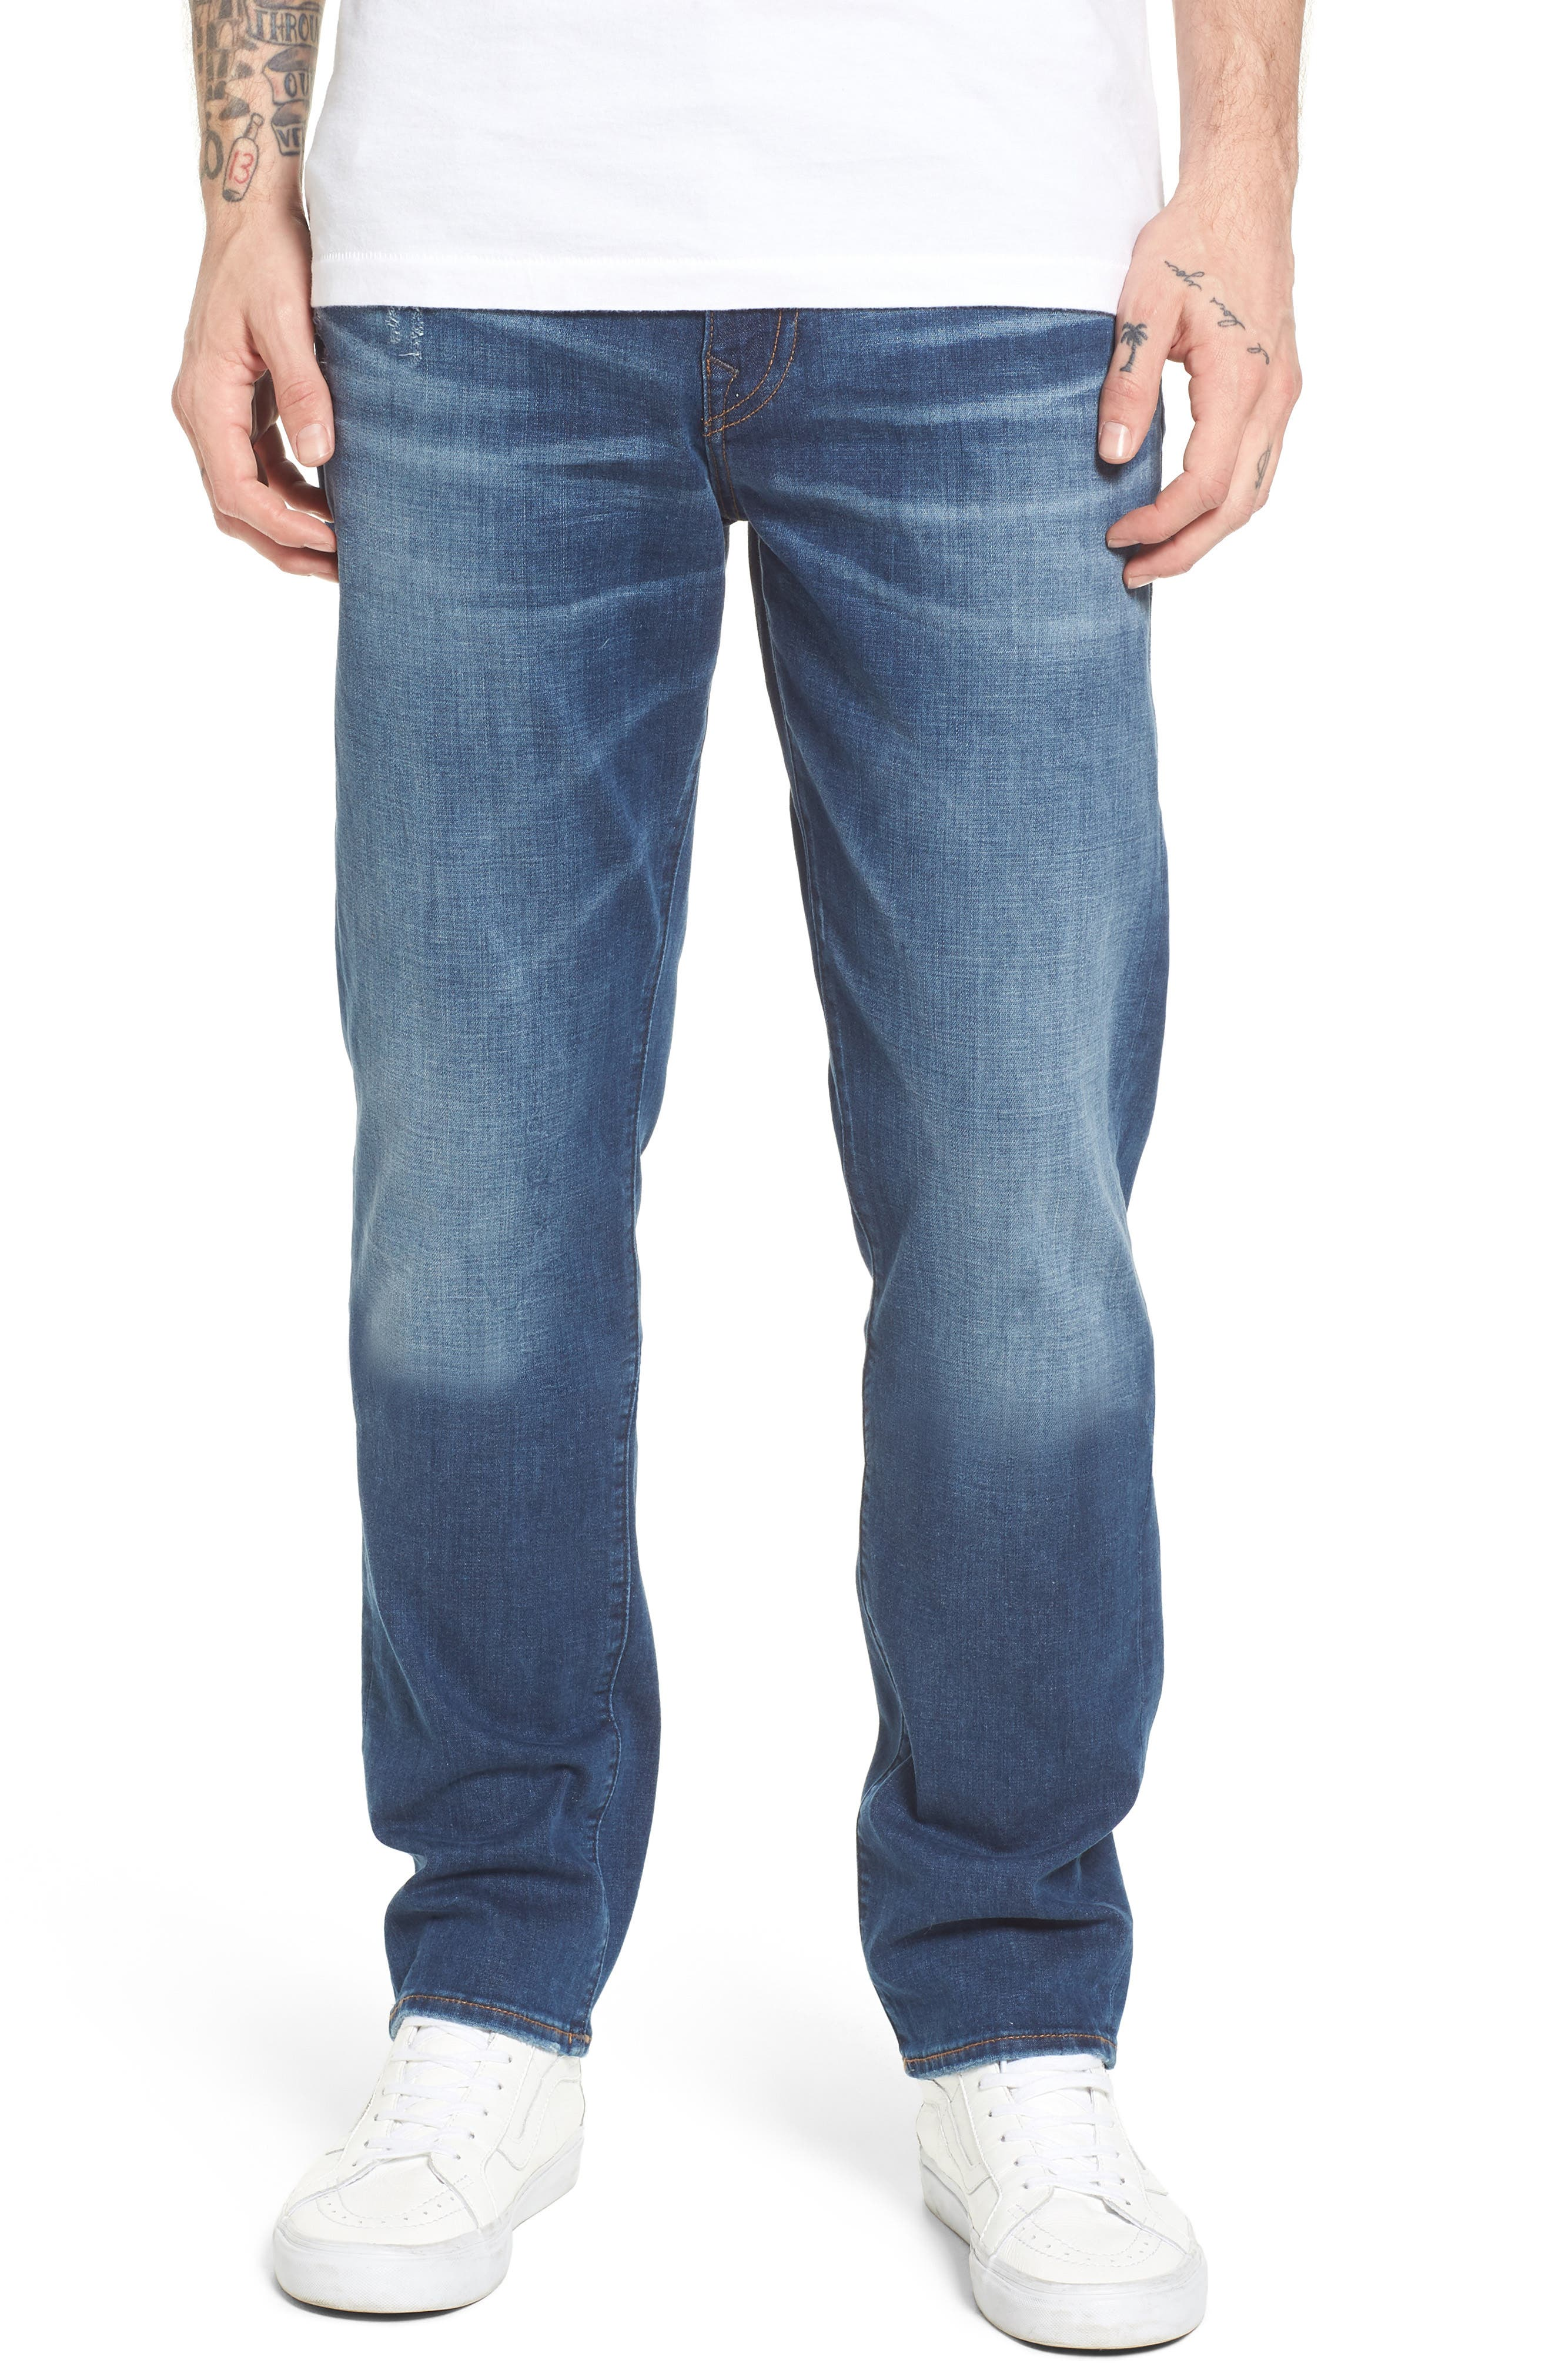 True Religion Brand Jeans Geno Straight Leg Jeans (Street Vice)